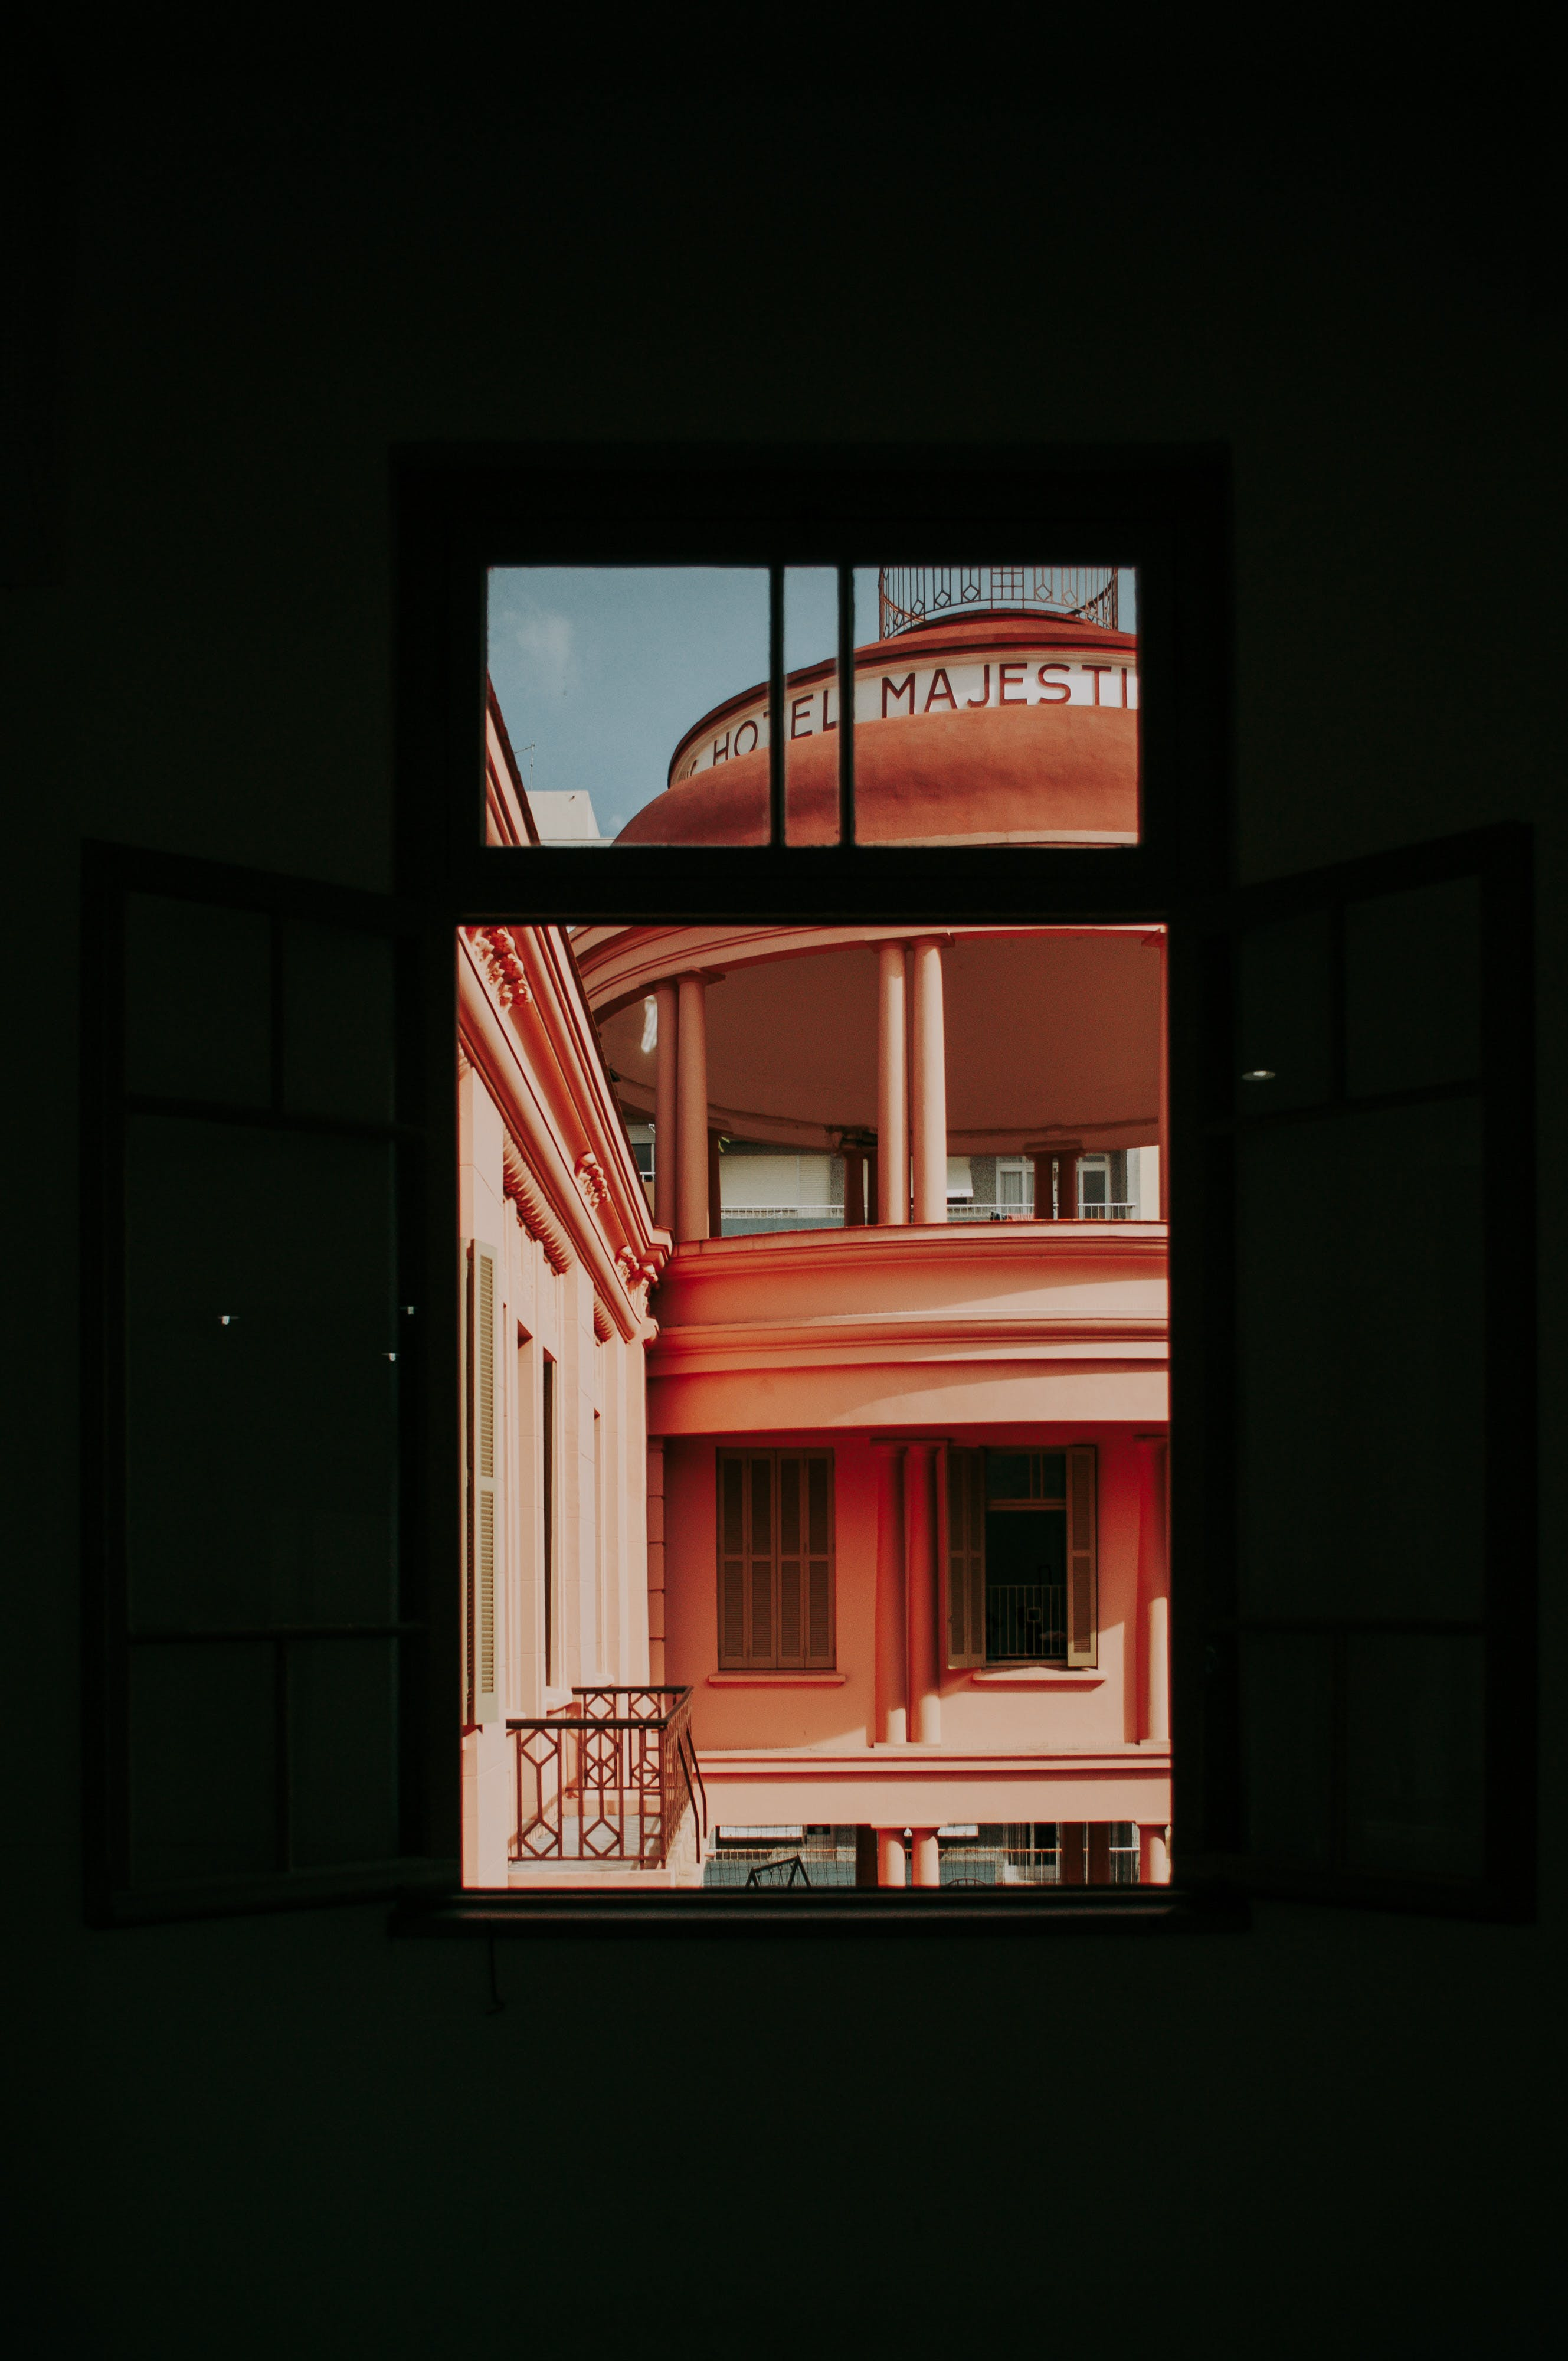 Orange Painted Building Through Window